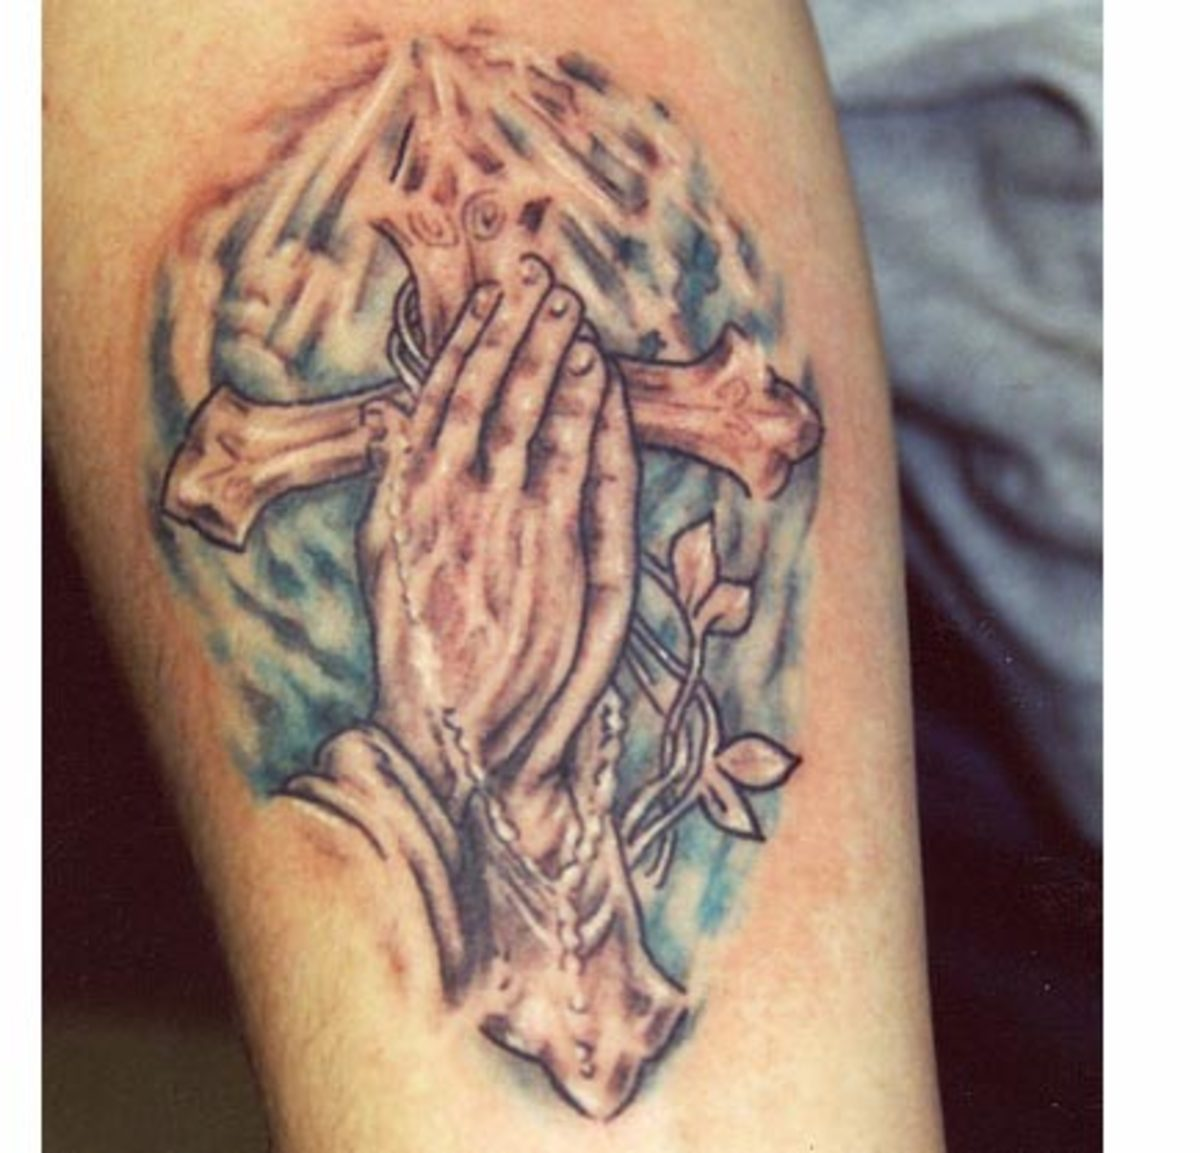 Praying Hands Tattoos Celtic / Irish Tattoo Designs …